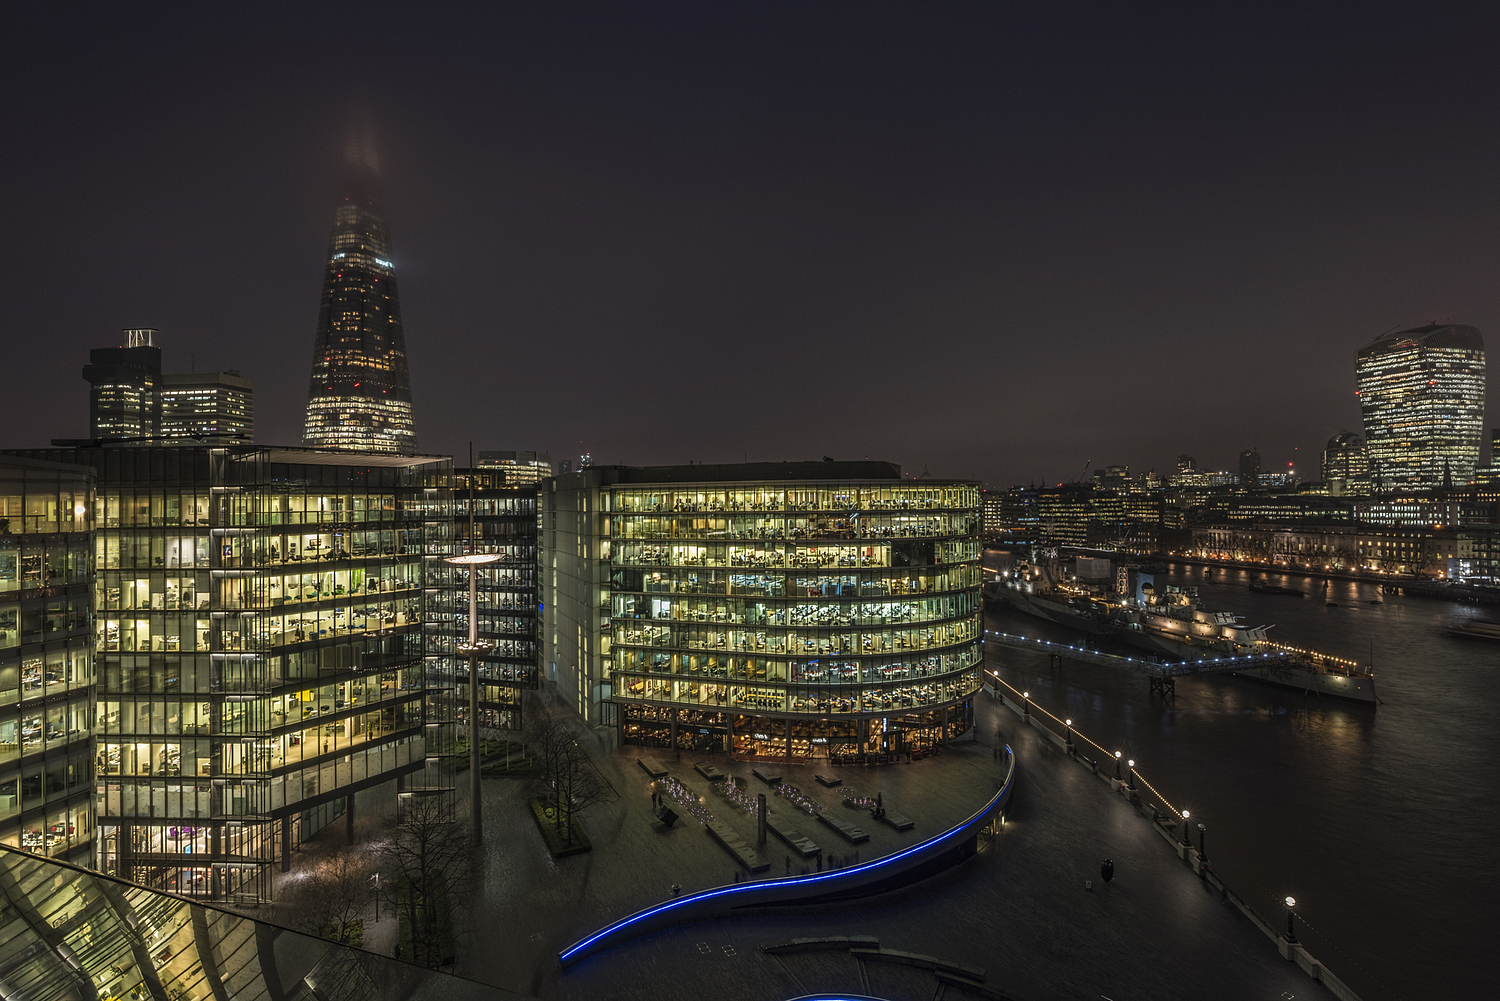 View of Southbank at night, London